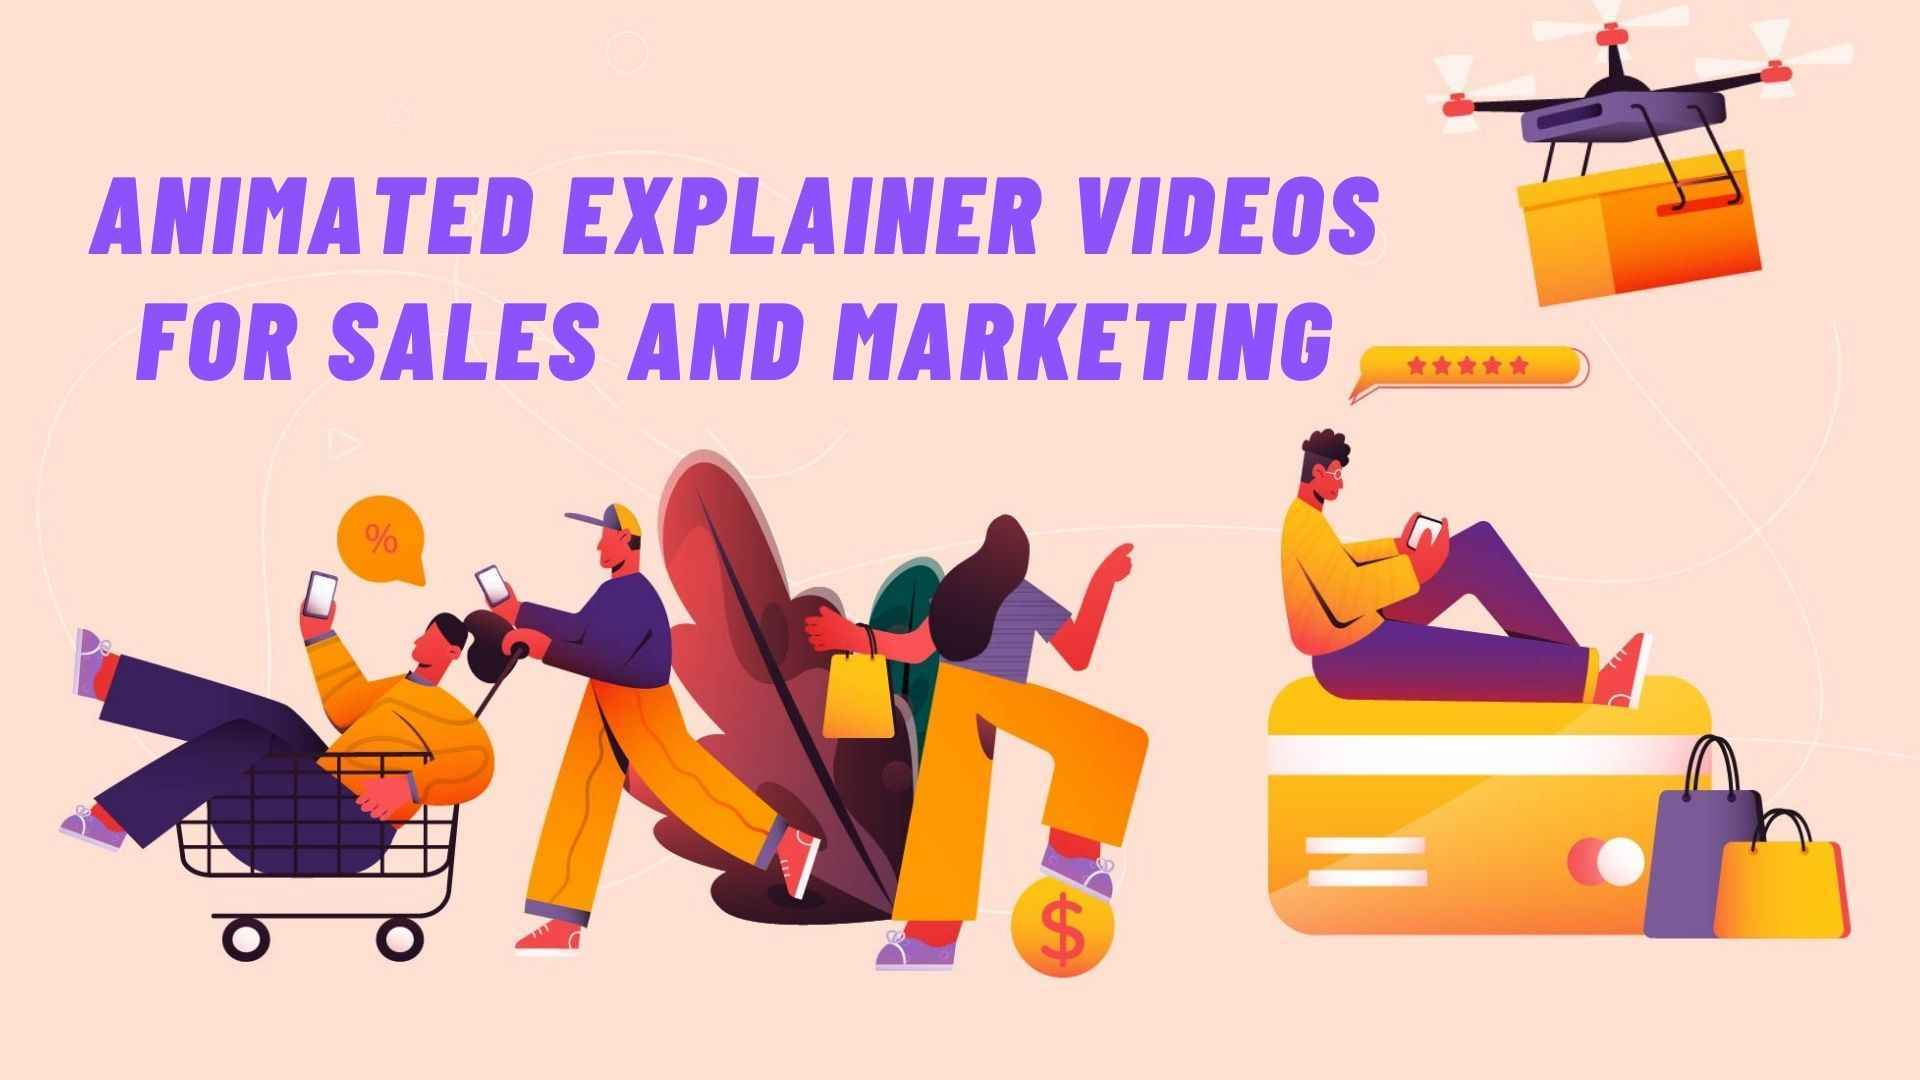 Animated explainer videos for Sales and Marketing